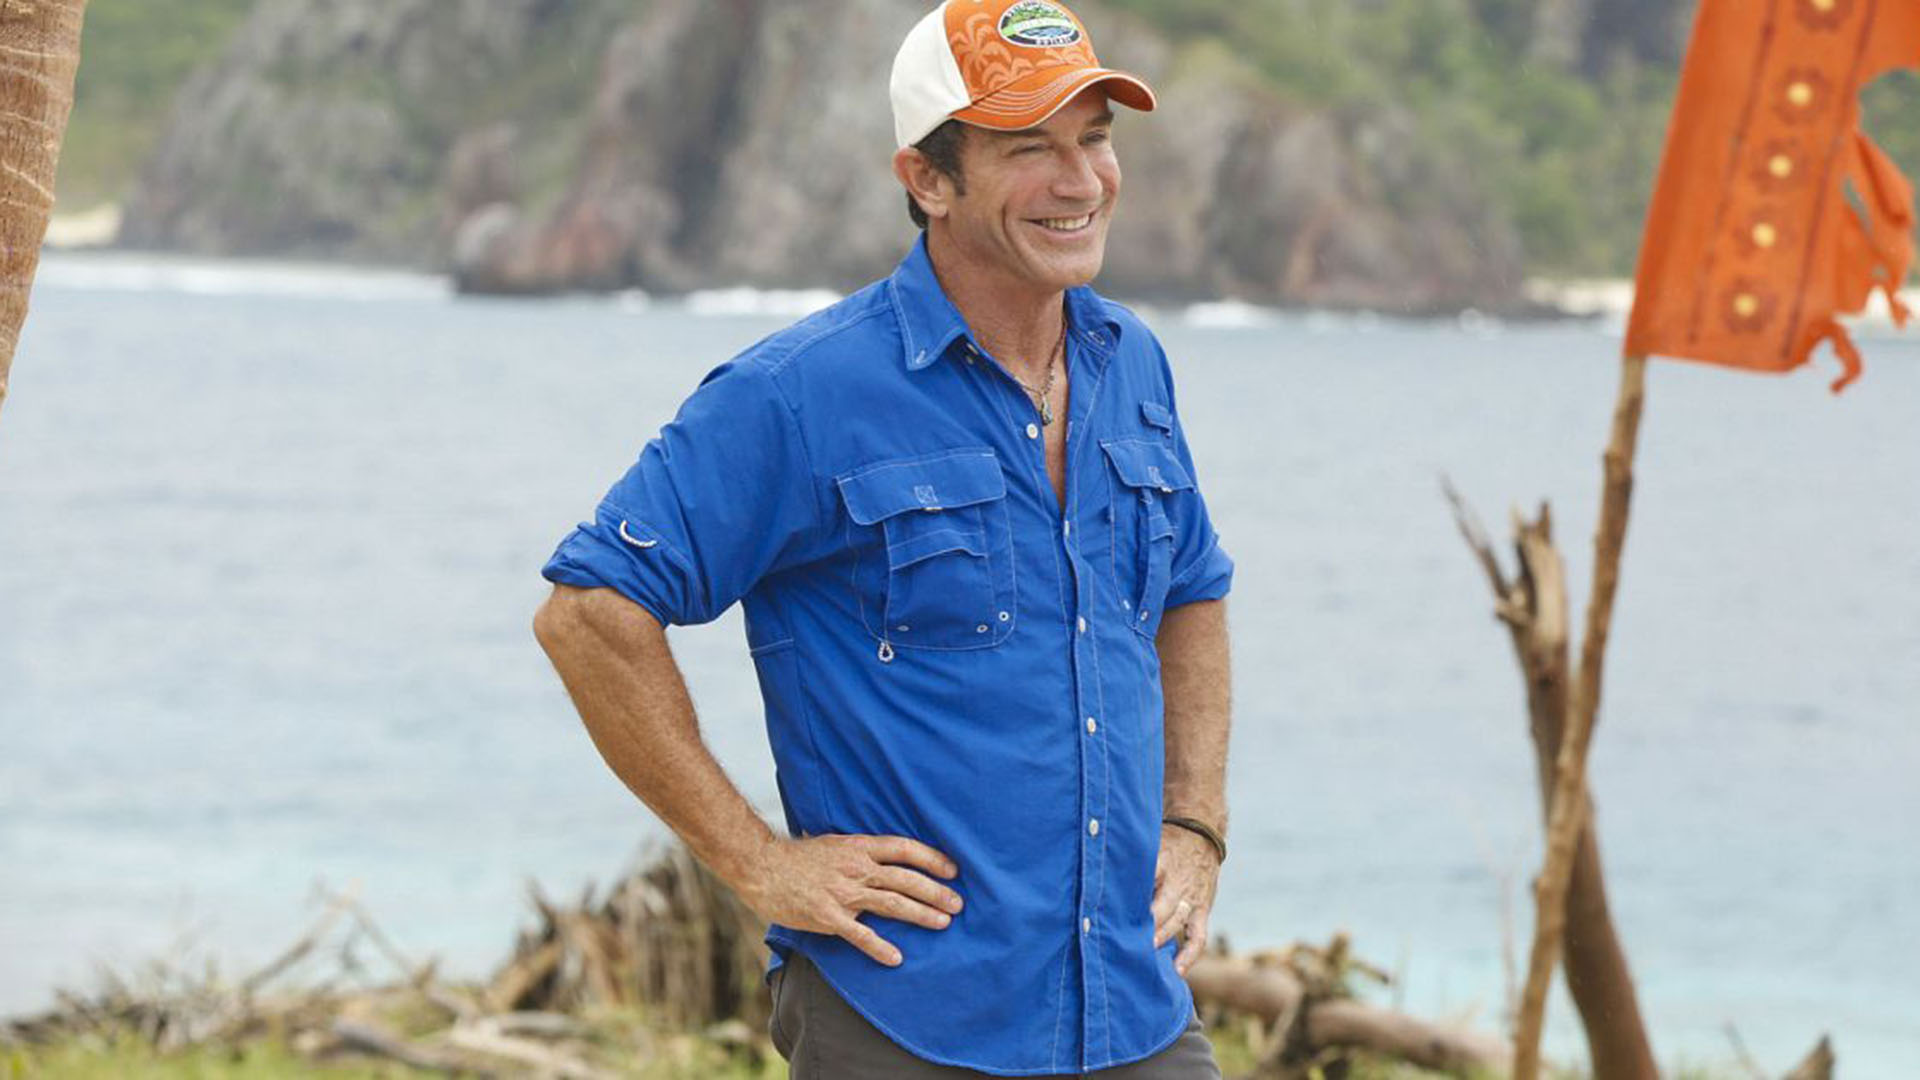 Survivor by the numbers